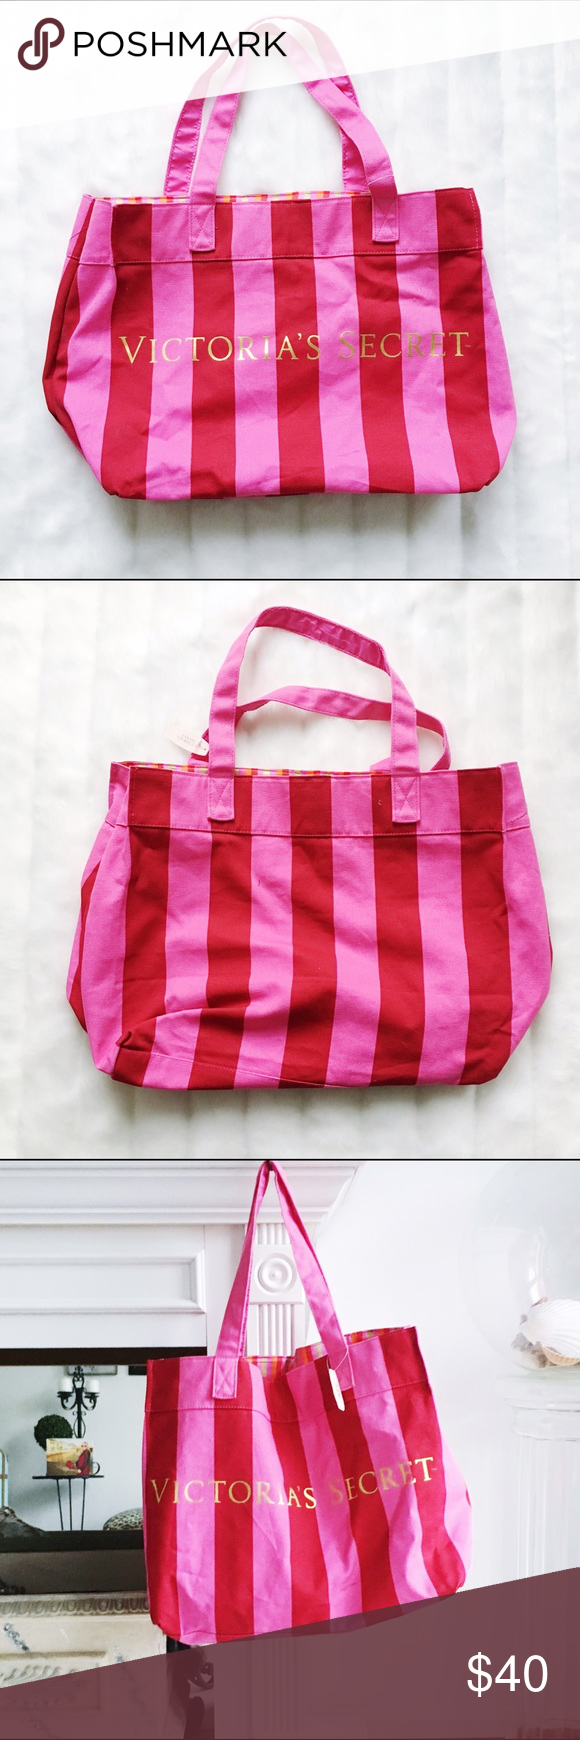 """Victoria's Secret pink & red striped tote bag New with tags Victoria's Secret tote bag. Original price $60.  13"""" high, 20.5"""" long, 8"""" long   Interior lining is red, pink, orange, and gold stripes.  Canvas. Never used.  * Fast shipping * Discounts on bundles Victoria's Secret Bags"""